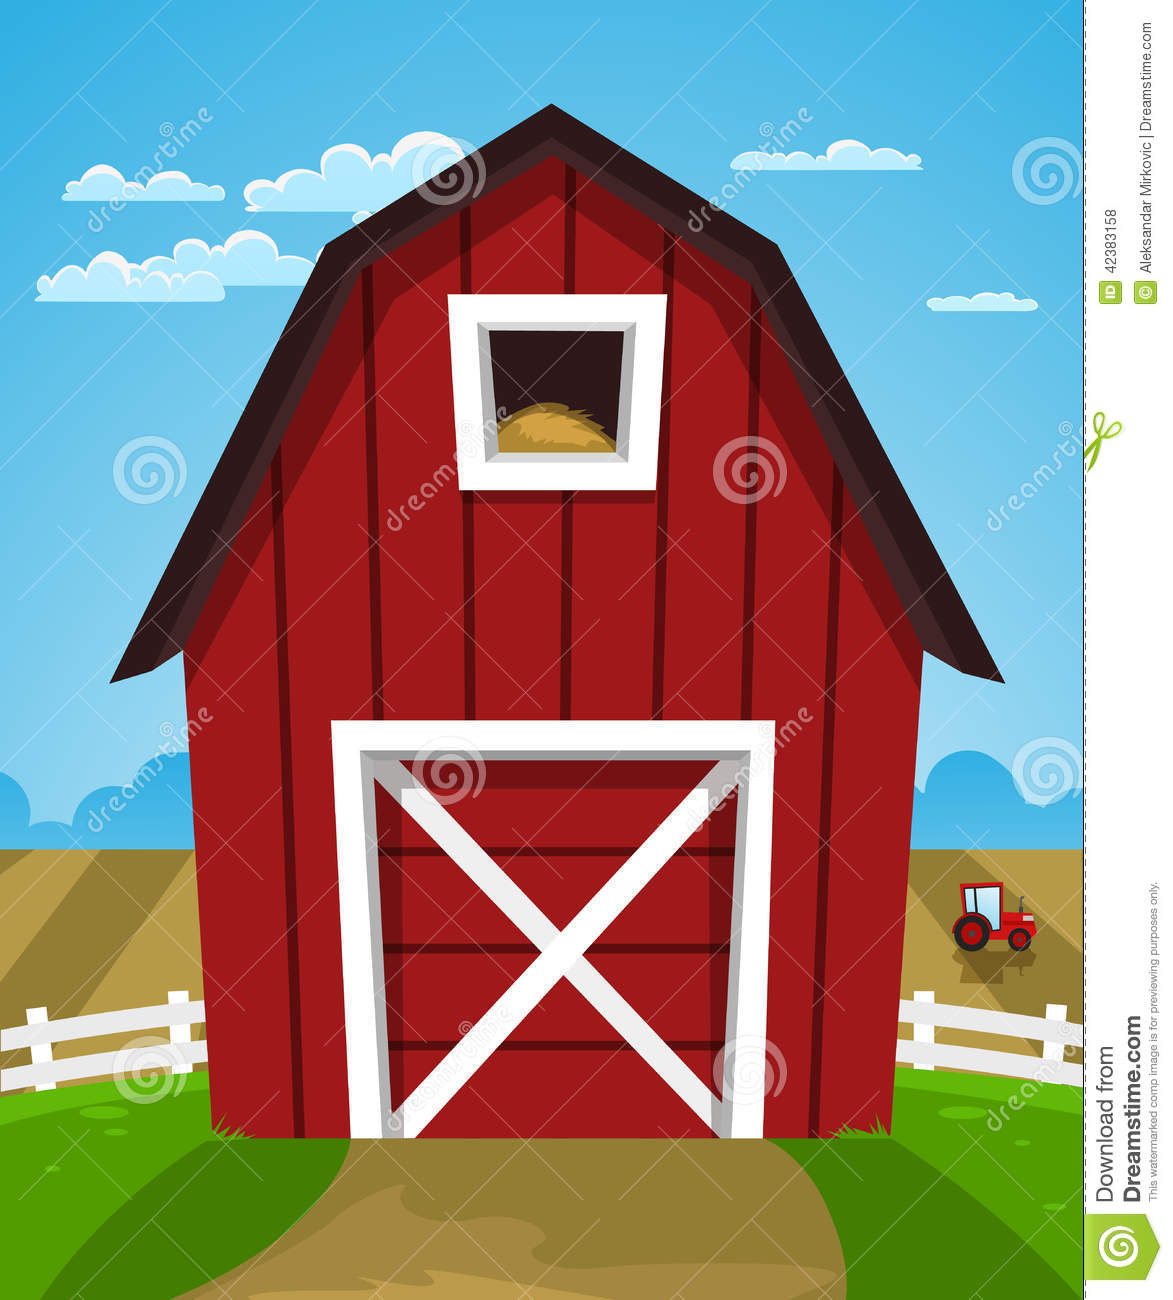 Red Farmhouse Drawing Red Farm Barn Stock Vector Image 42383158